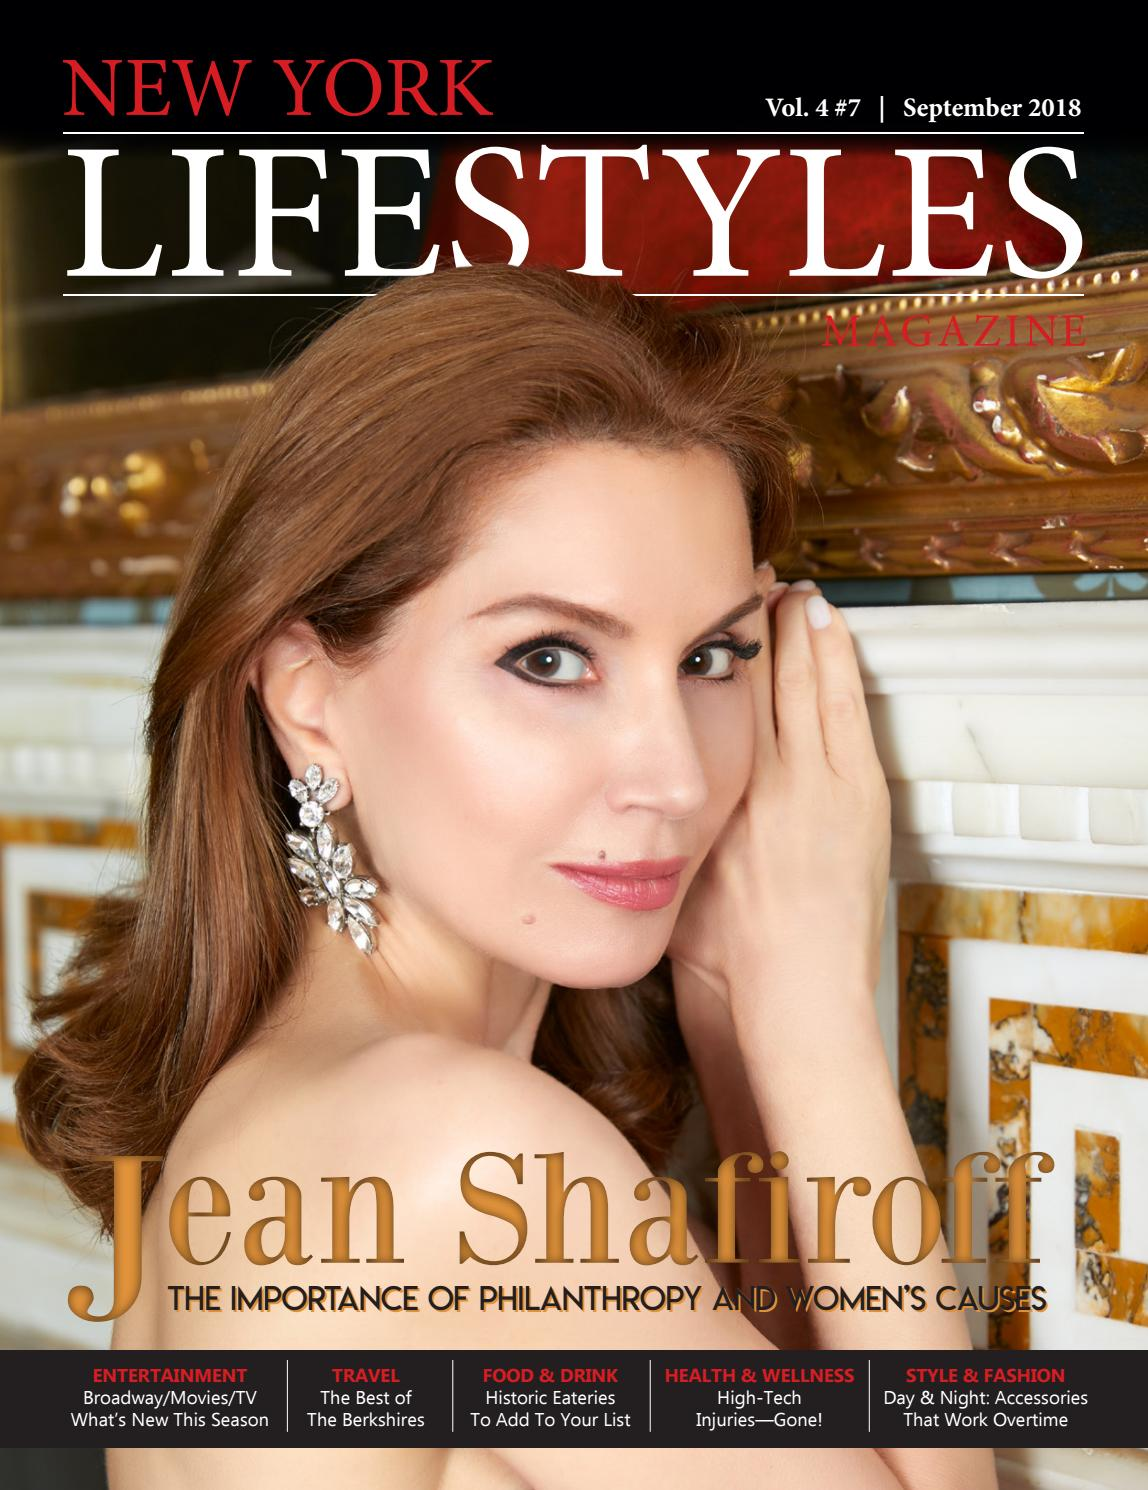 cd939e6f9 New York Lifestyles Magazine - September 2018 by New York Lifestyles  Magazine - issuu